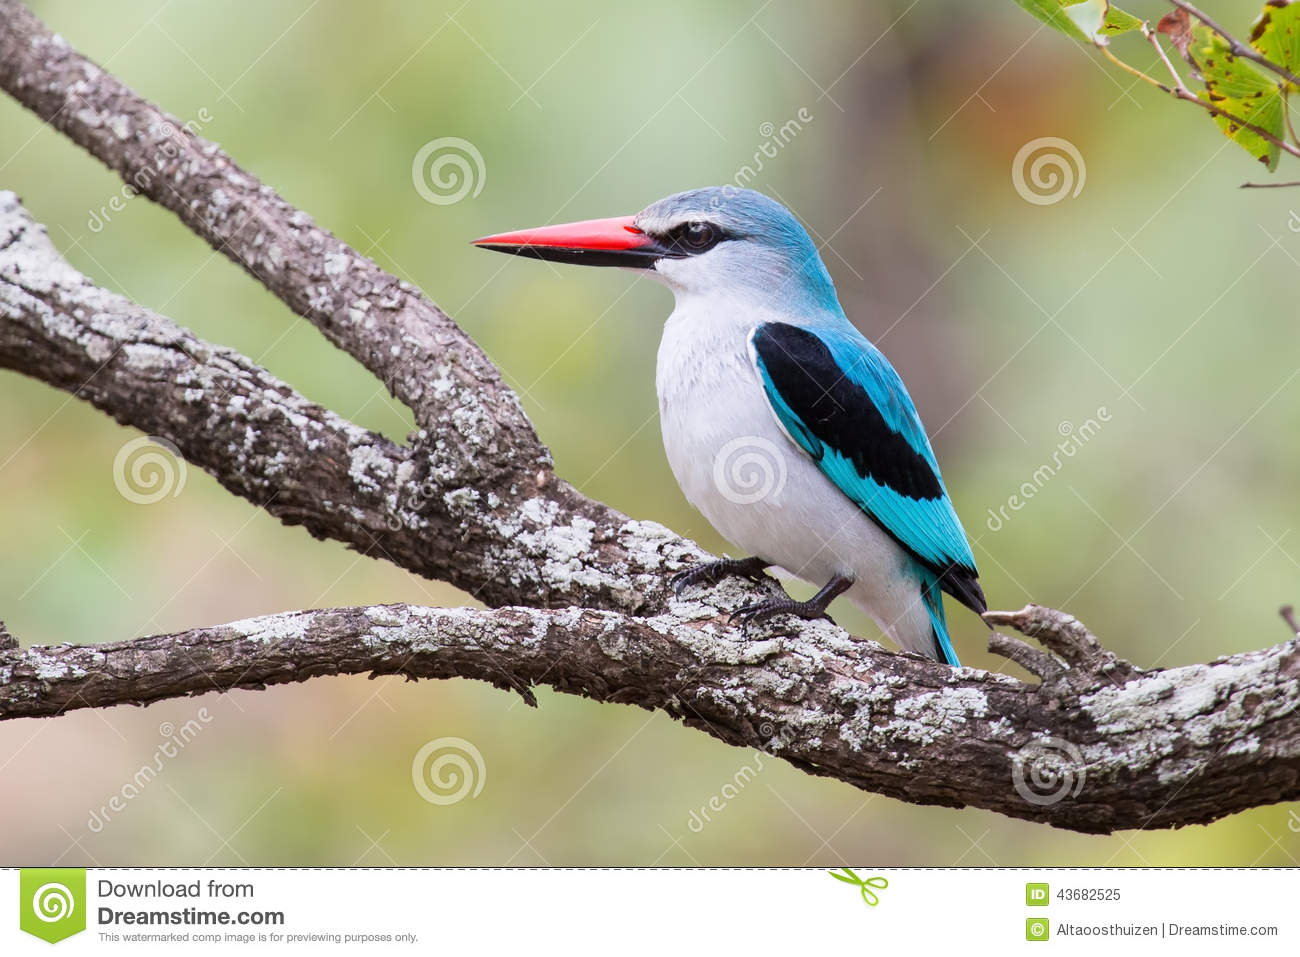 Woodland Kingfisher clipart #14, Download drawings